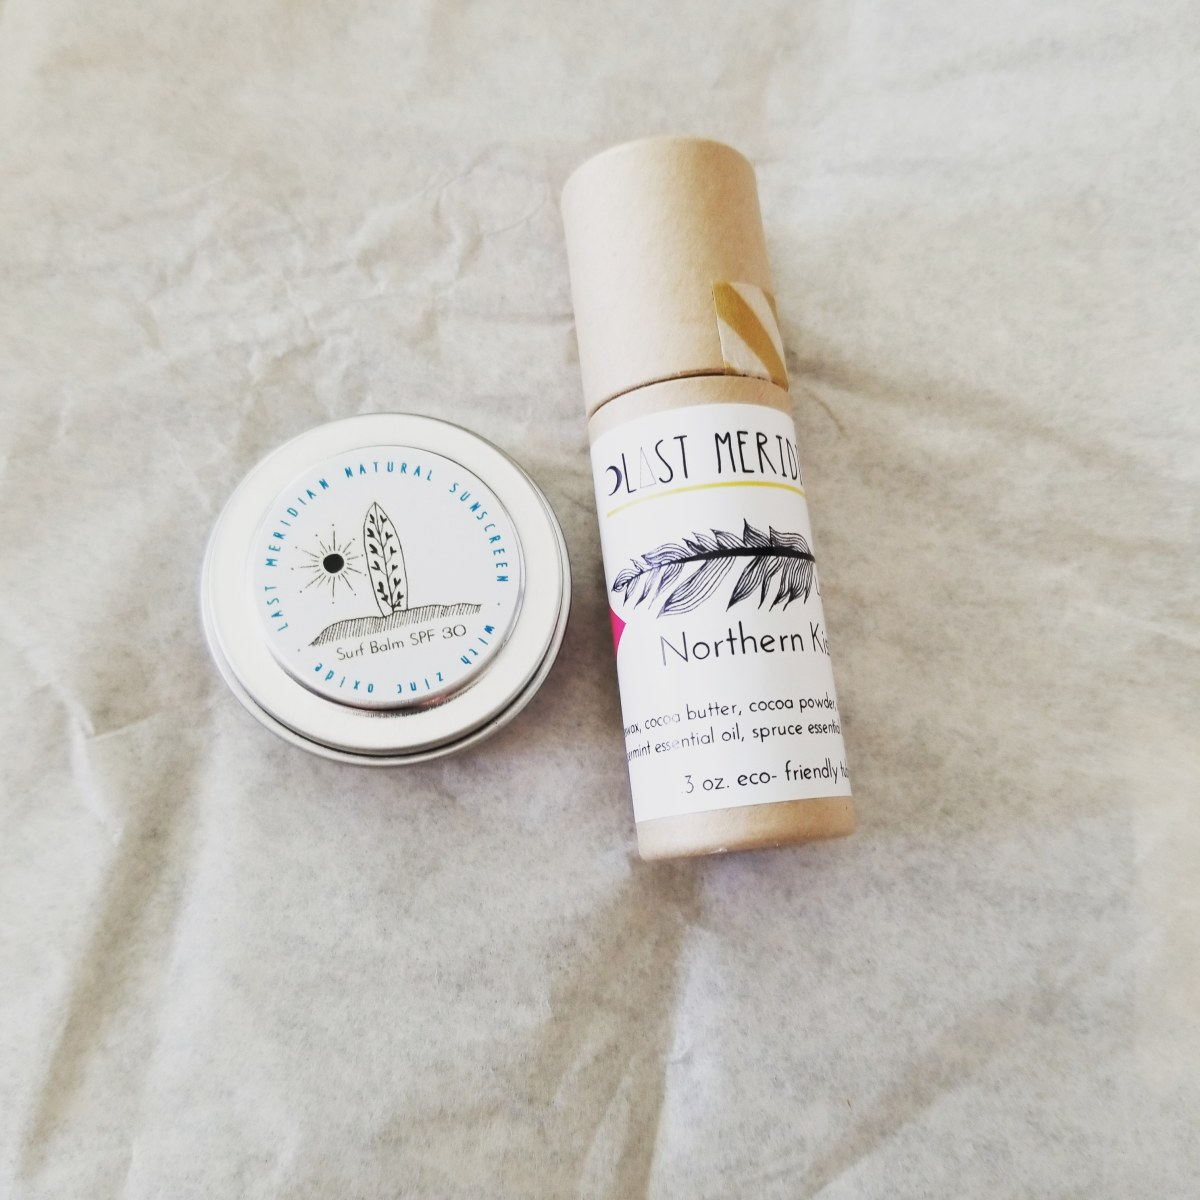 Last Meridian Lip Balm and Surf Balm